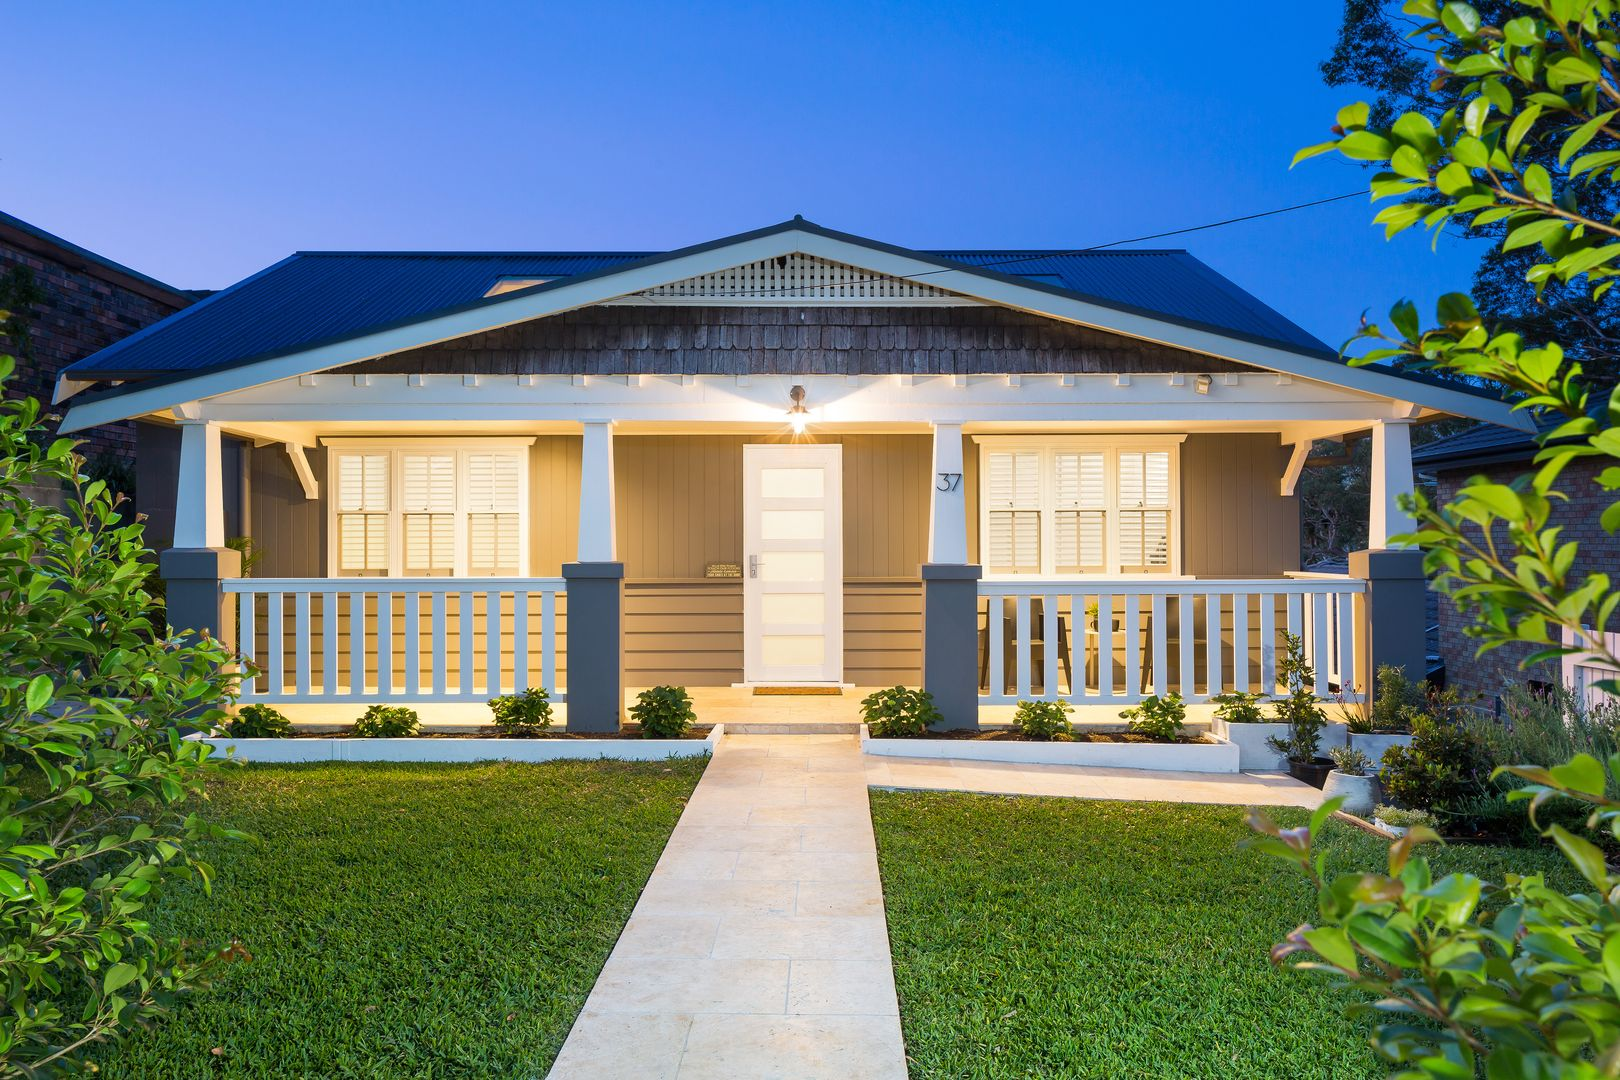 37 Oyster Bay Road, Oyster Bay NSW 2225, Image 0